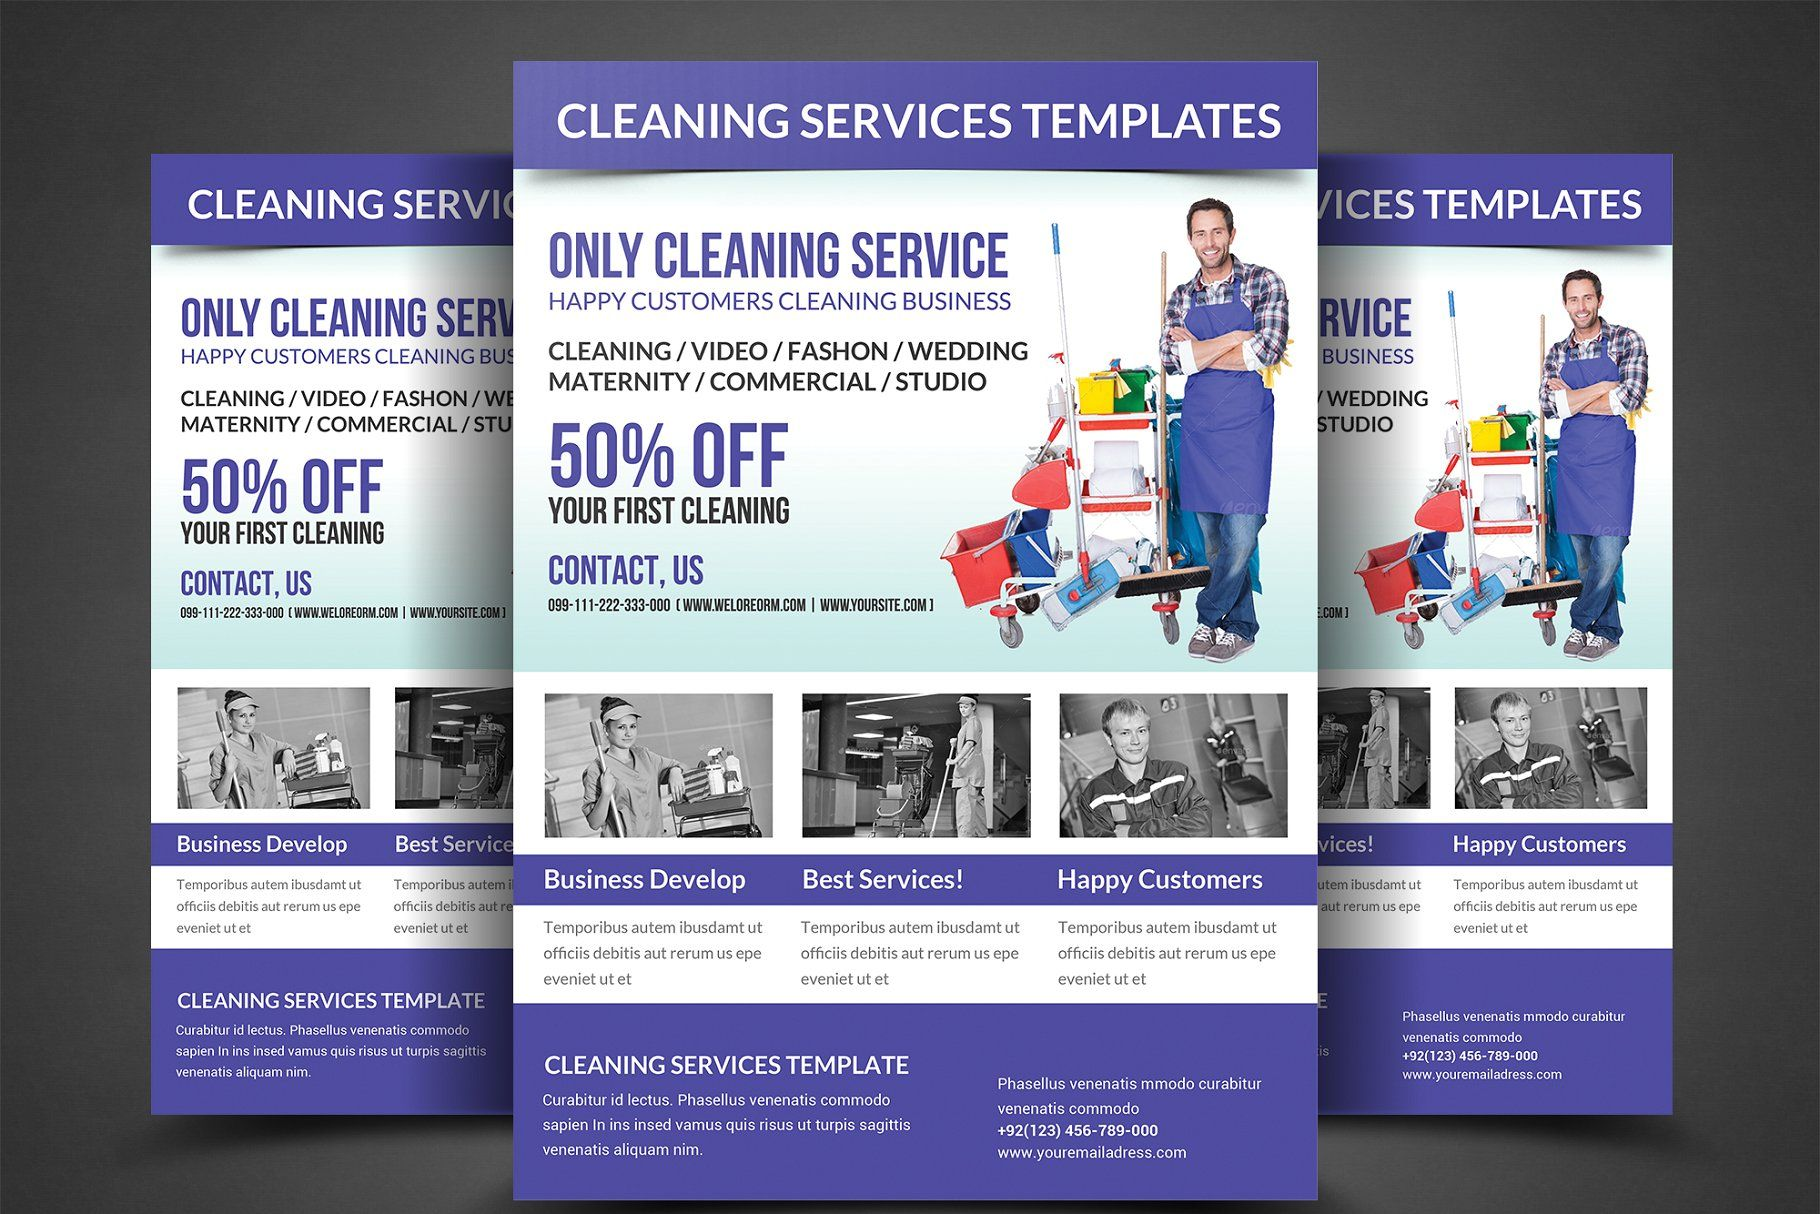 Cleaning Services Flyer Template Services Cleaning Flyer Templates Cleaning Service Flyer Business Flyer Templates Flyer Template House cleaning flyers template free